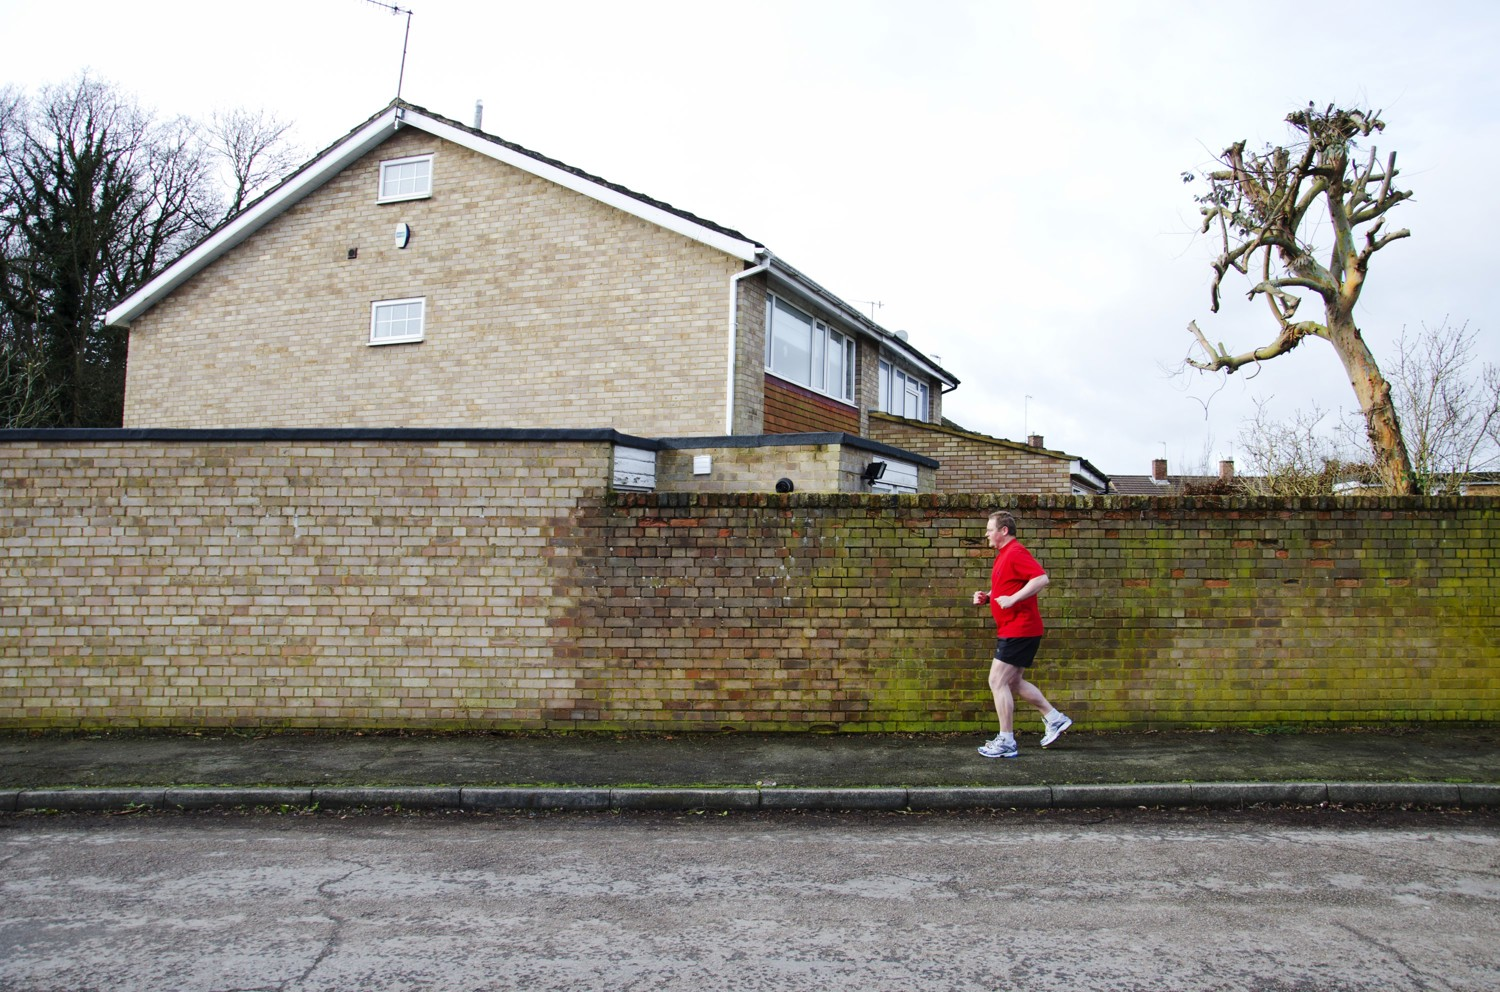 Andrew jogging by a wall